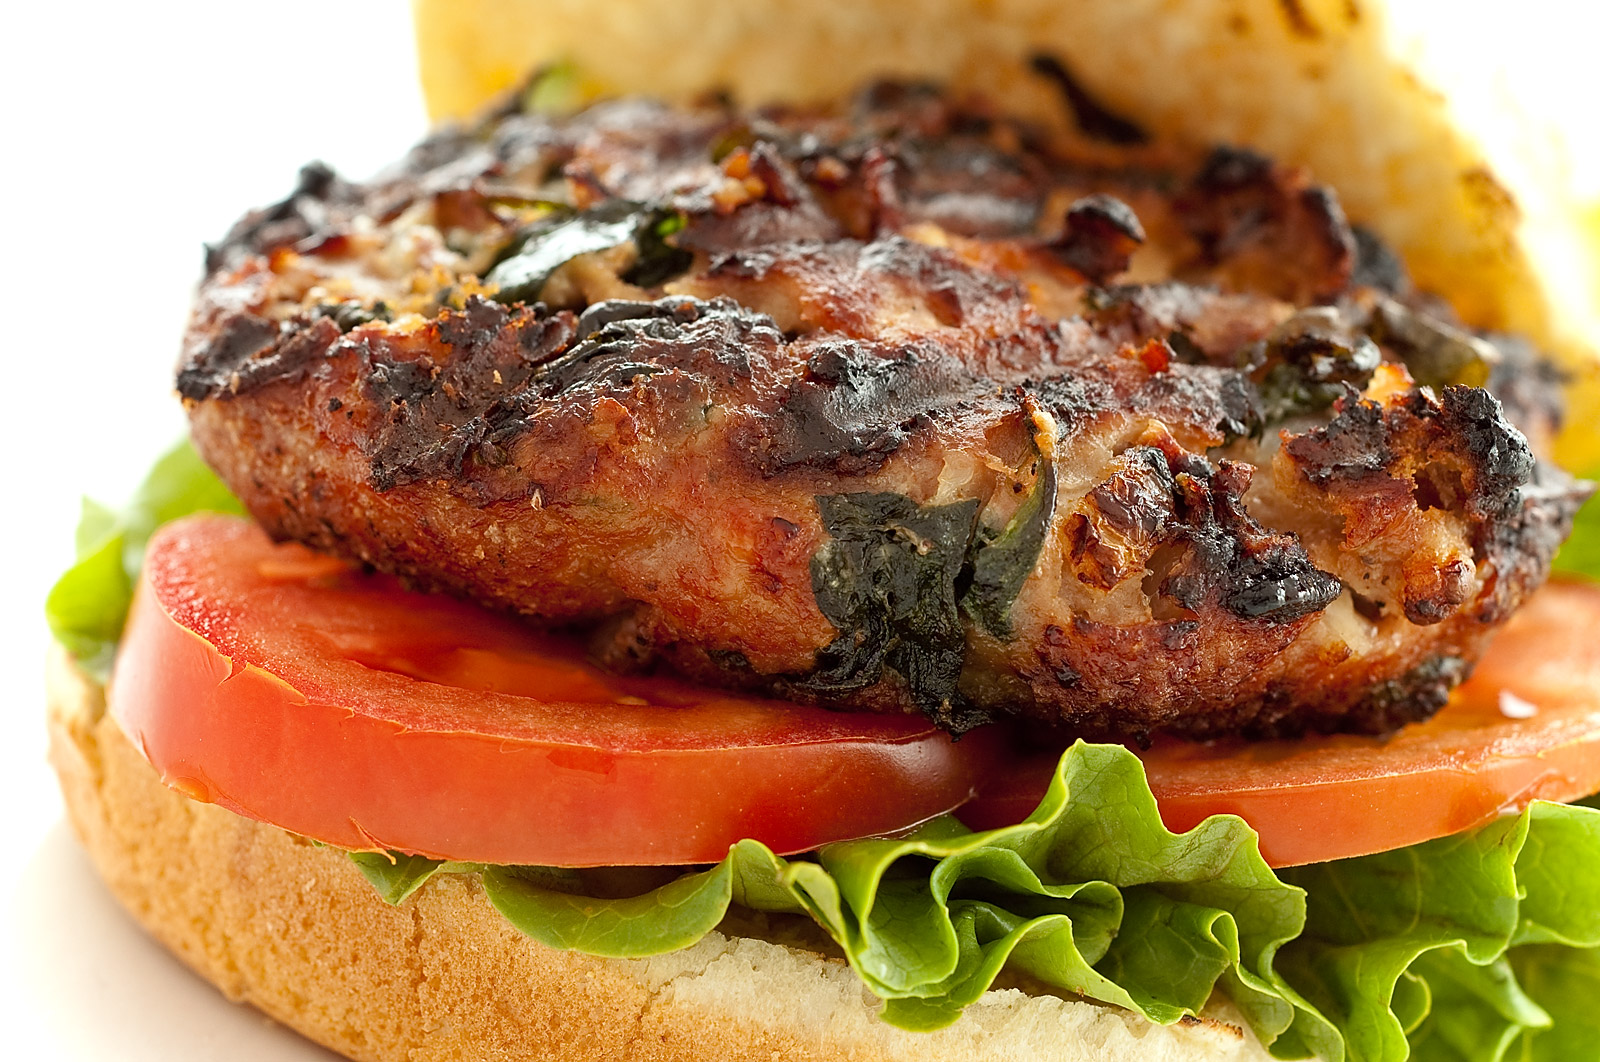 Spinach and Feta Turkey Burger